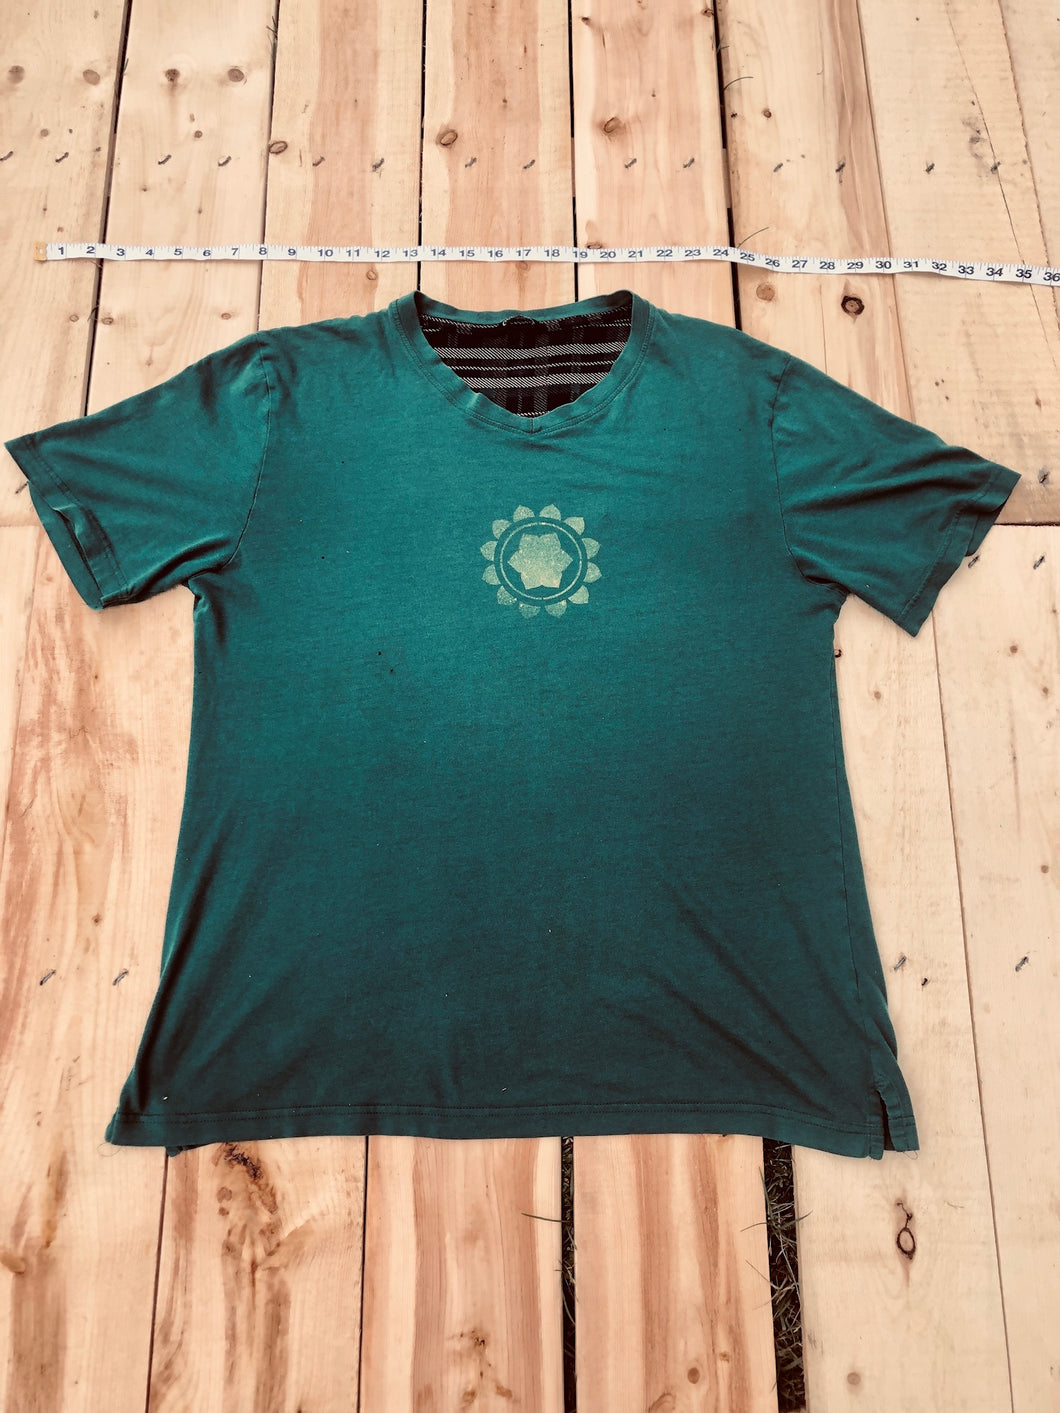 Large Pine Green T-Shirt Heart Chakra Mandala One of a Kind